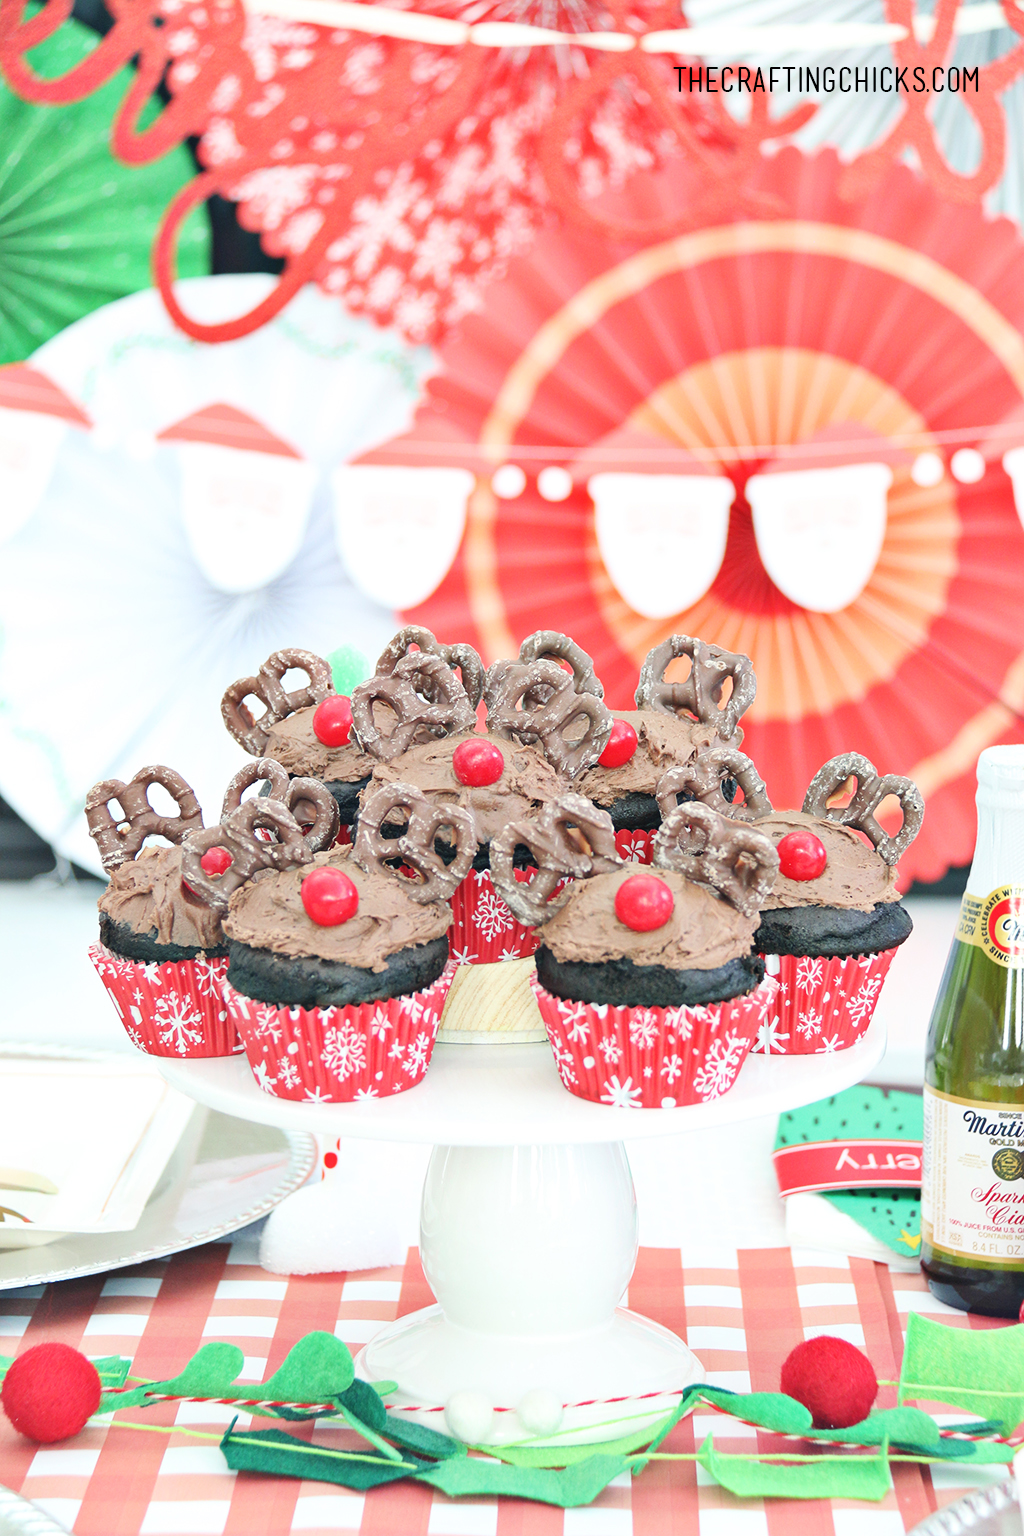 Reindeer cupcakes on decorated party table with red and green paper fan background.